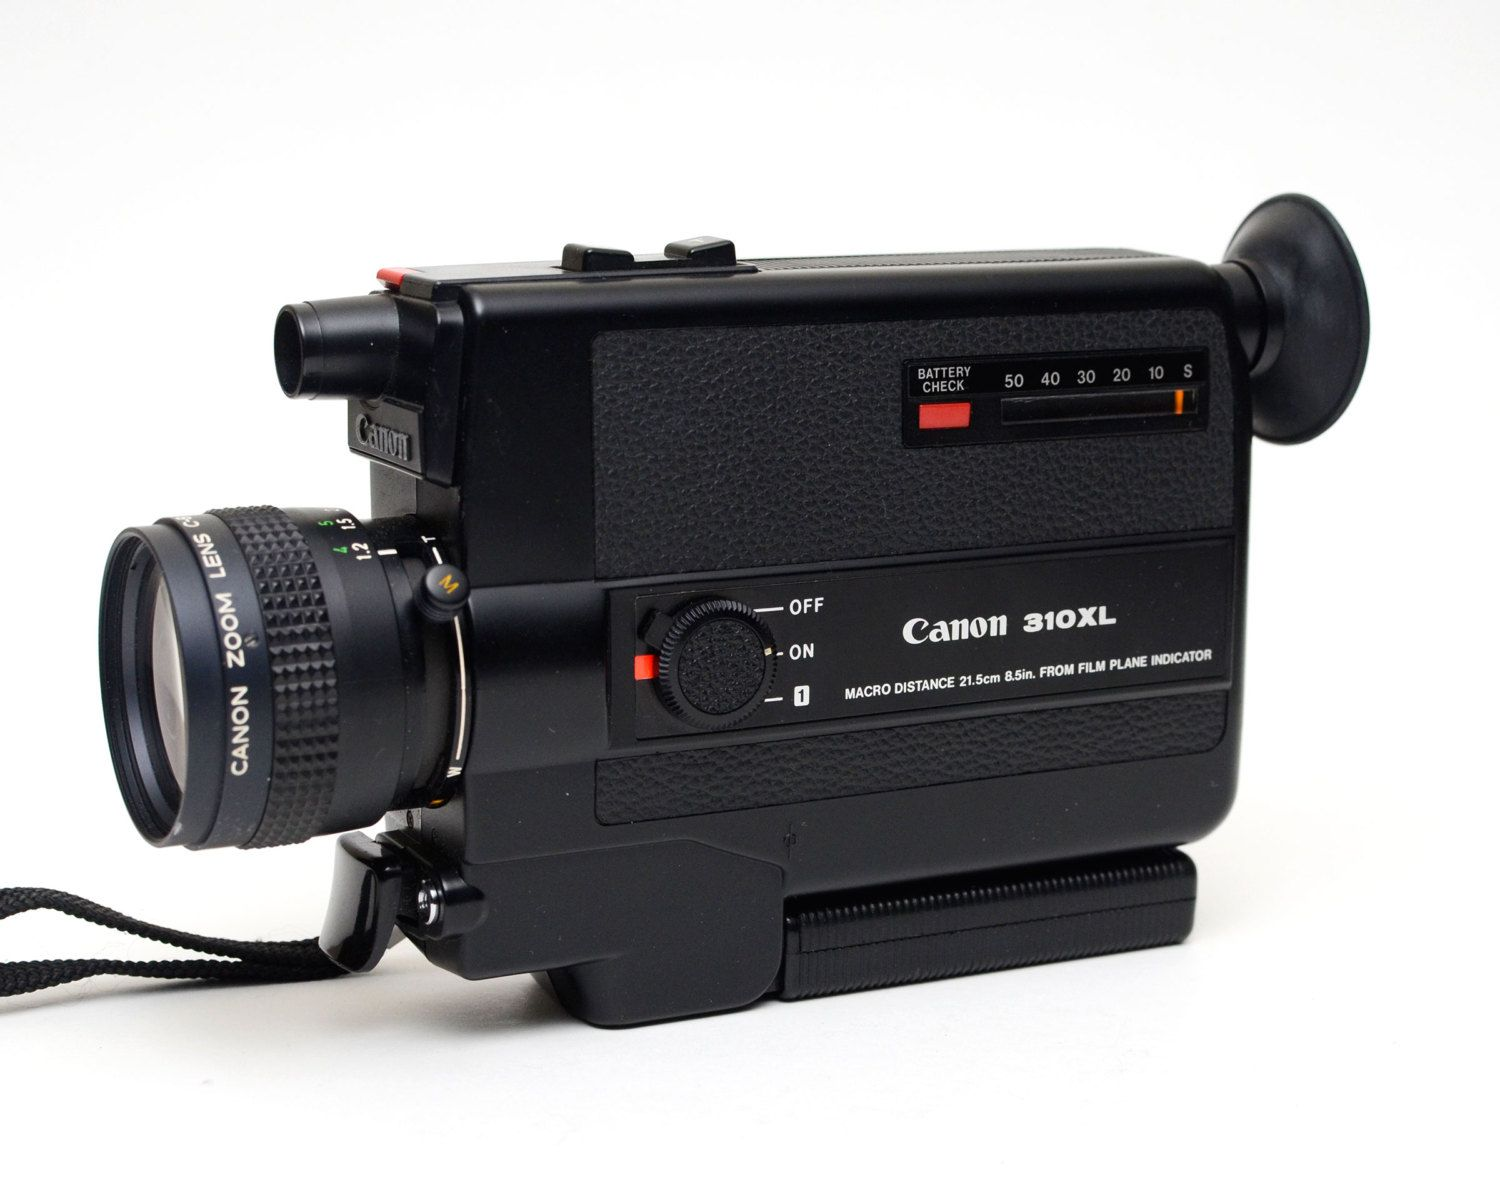 Vintage Canon 310XL - Super 8 Film Movie Camera by ValueBliss on Etsy